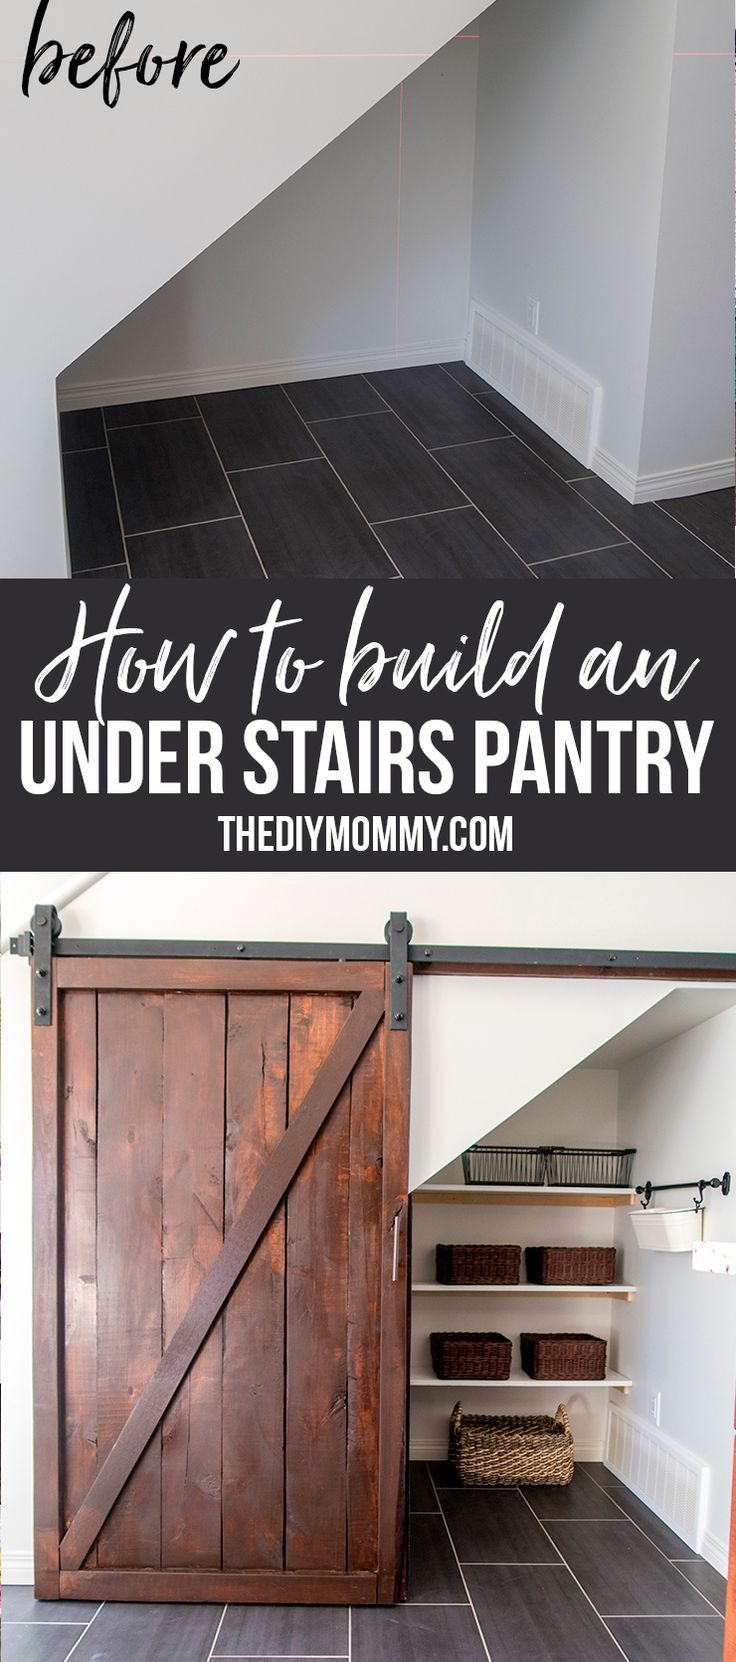 Hallway storage with sliding doors  Great idea How to build an under the stairs pantry with a DIY